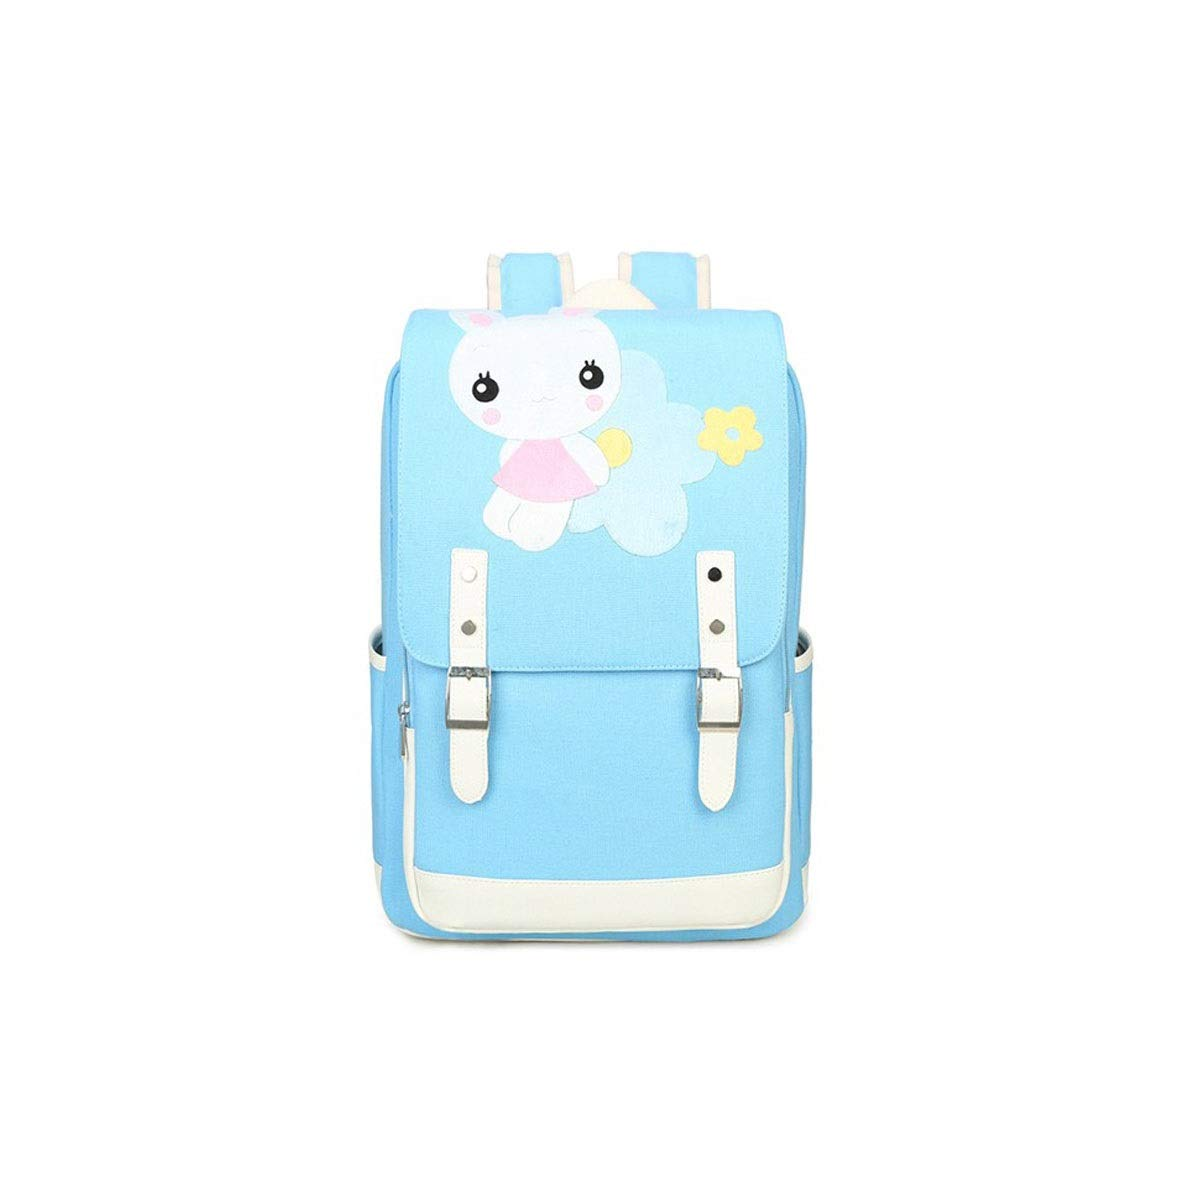 TONGBOSHI Simple Fashion Backpack, School Bag Primary School Student, Girl Leisure Travel Travel Backpack, Lightweight Backpack (Color : Blue, Size : S)